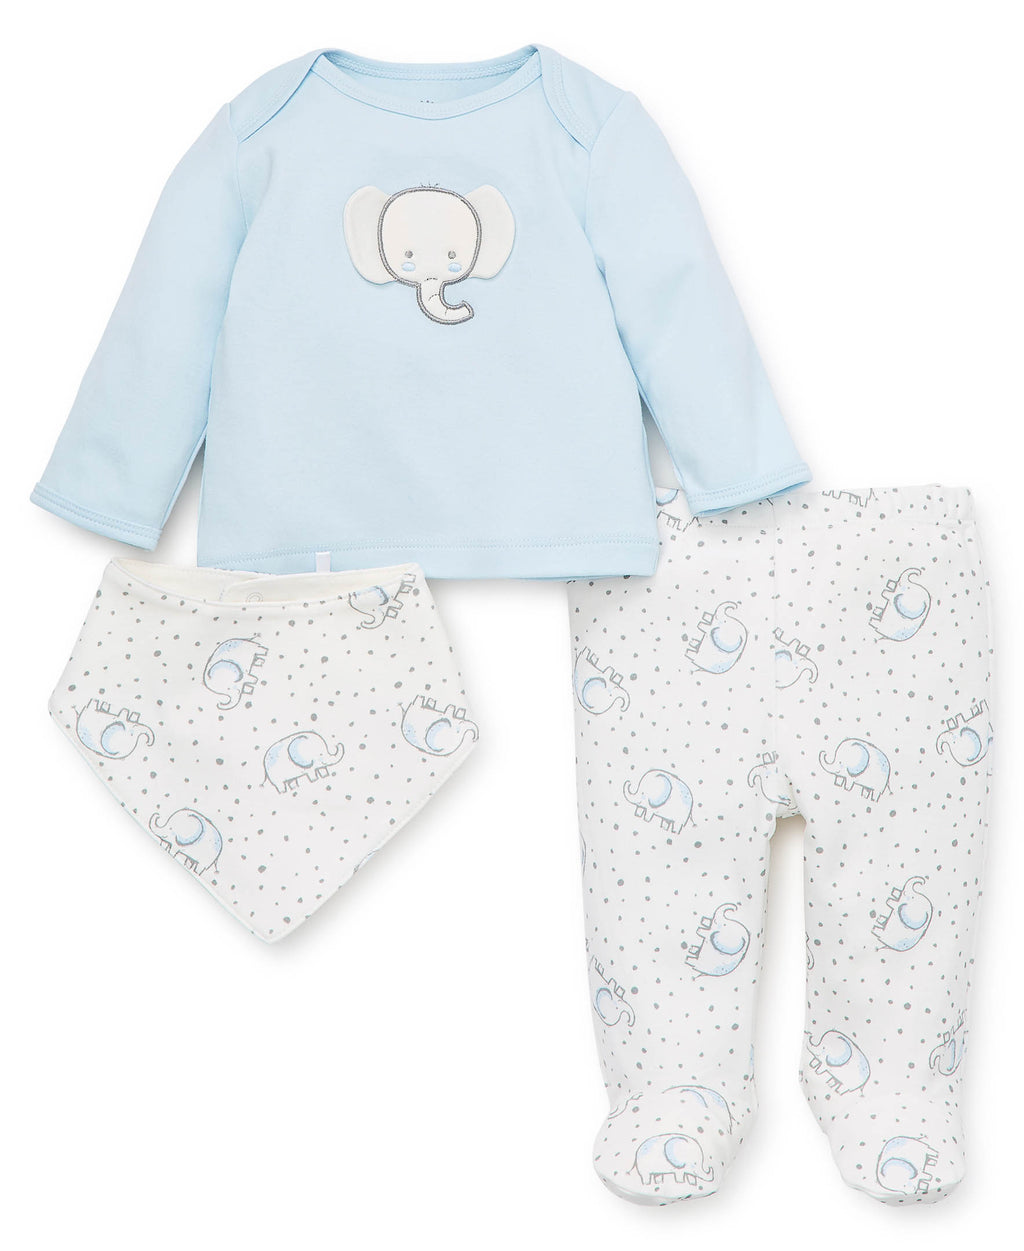 Elephant Footed Pant Set